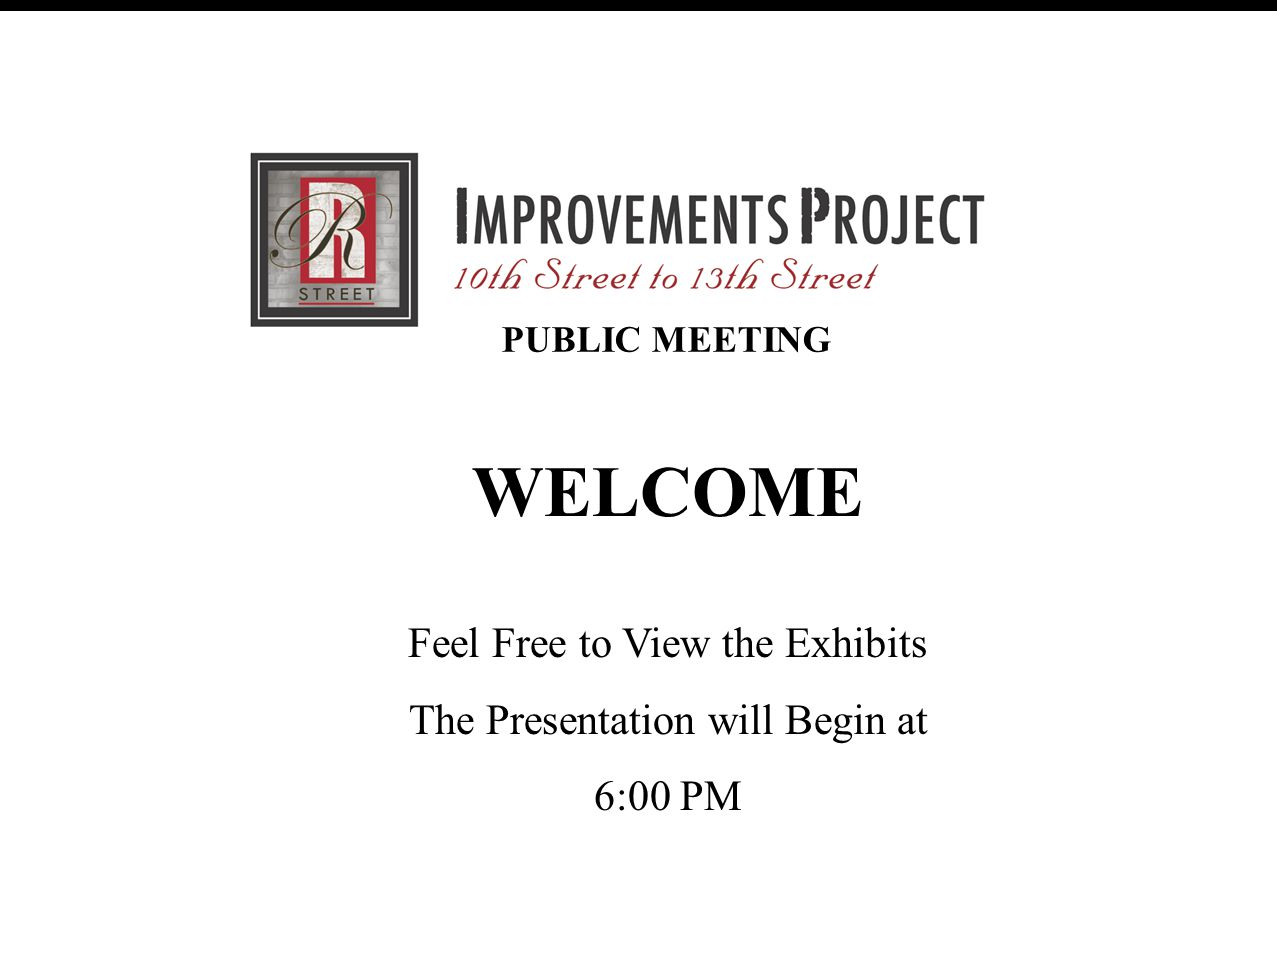 R Street Improvement Project (30% Review Meeting) February 28, 2007 PUBLIC MEETING WELCOME Feel Free to View the Exhibits The Presentation will Begin at 6:00 PM